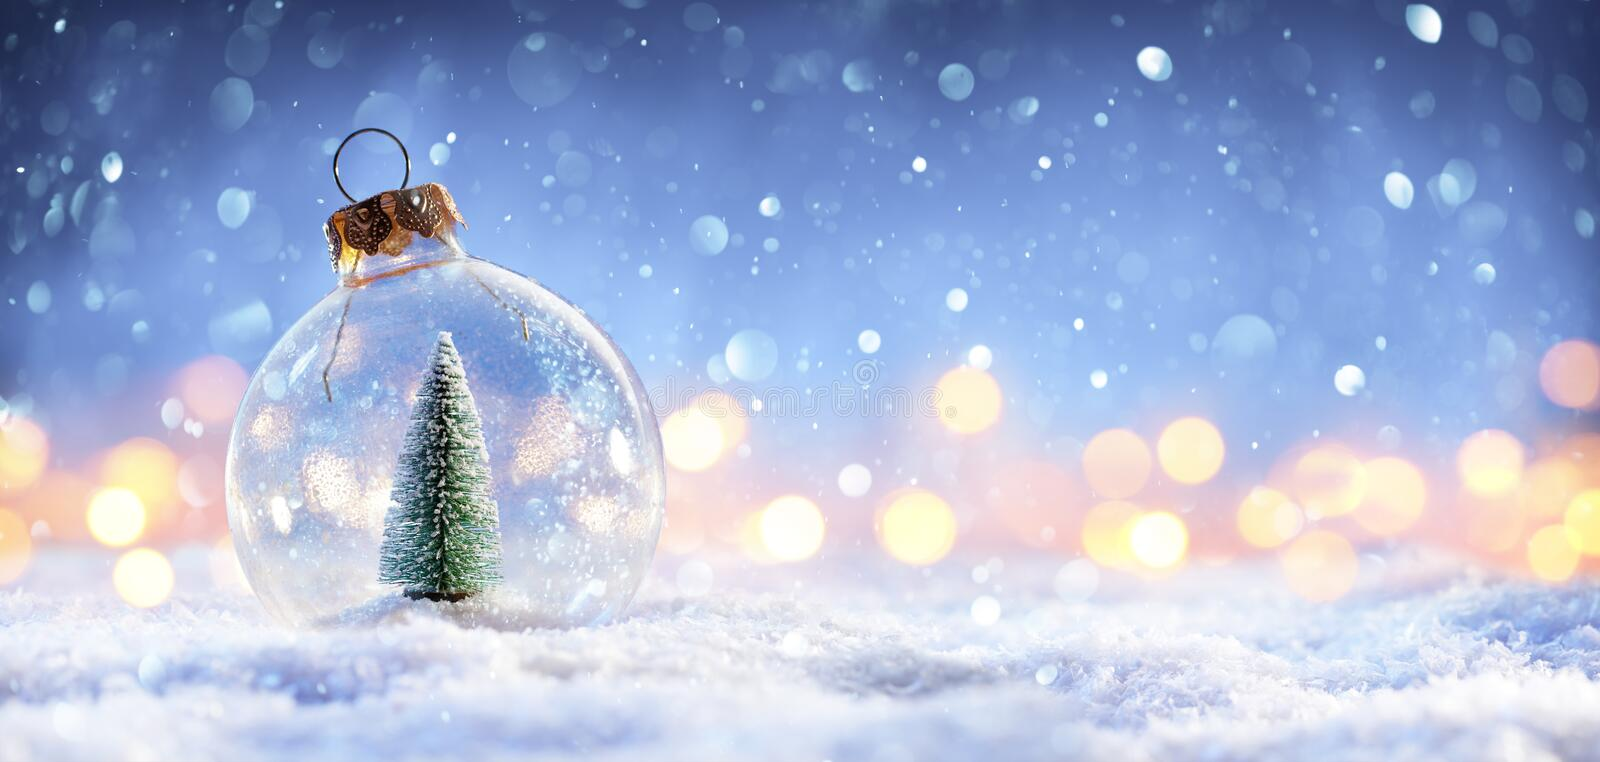 Snow Ball With Christmas Tree In It And Lights. On Winter Background vector illustration